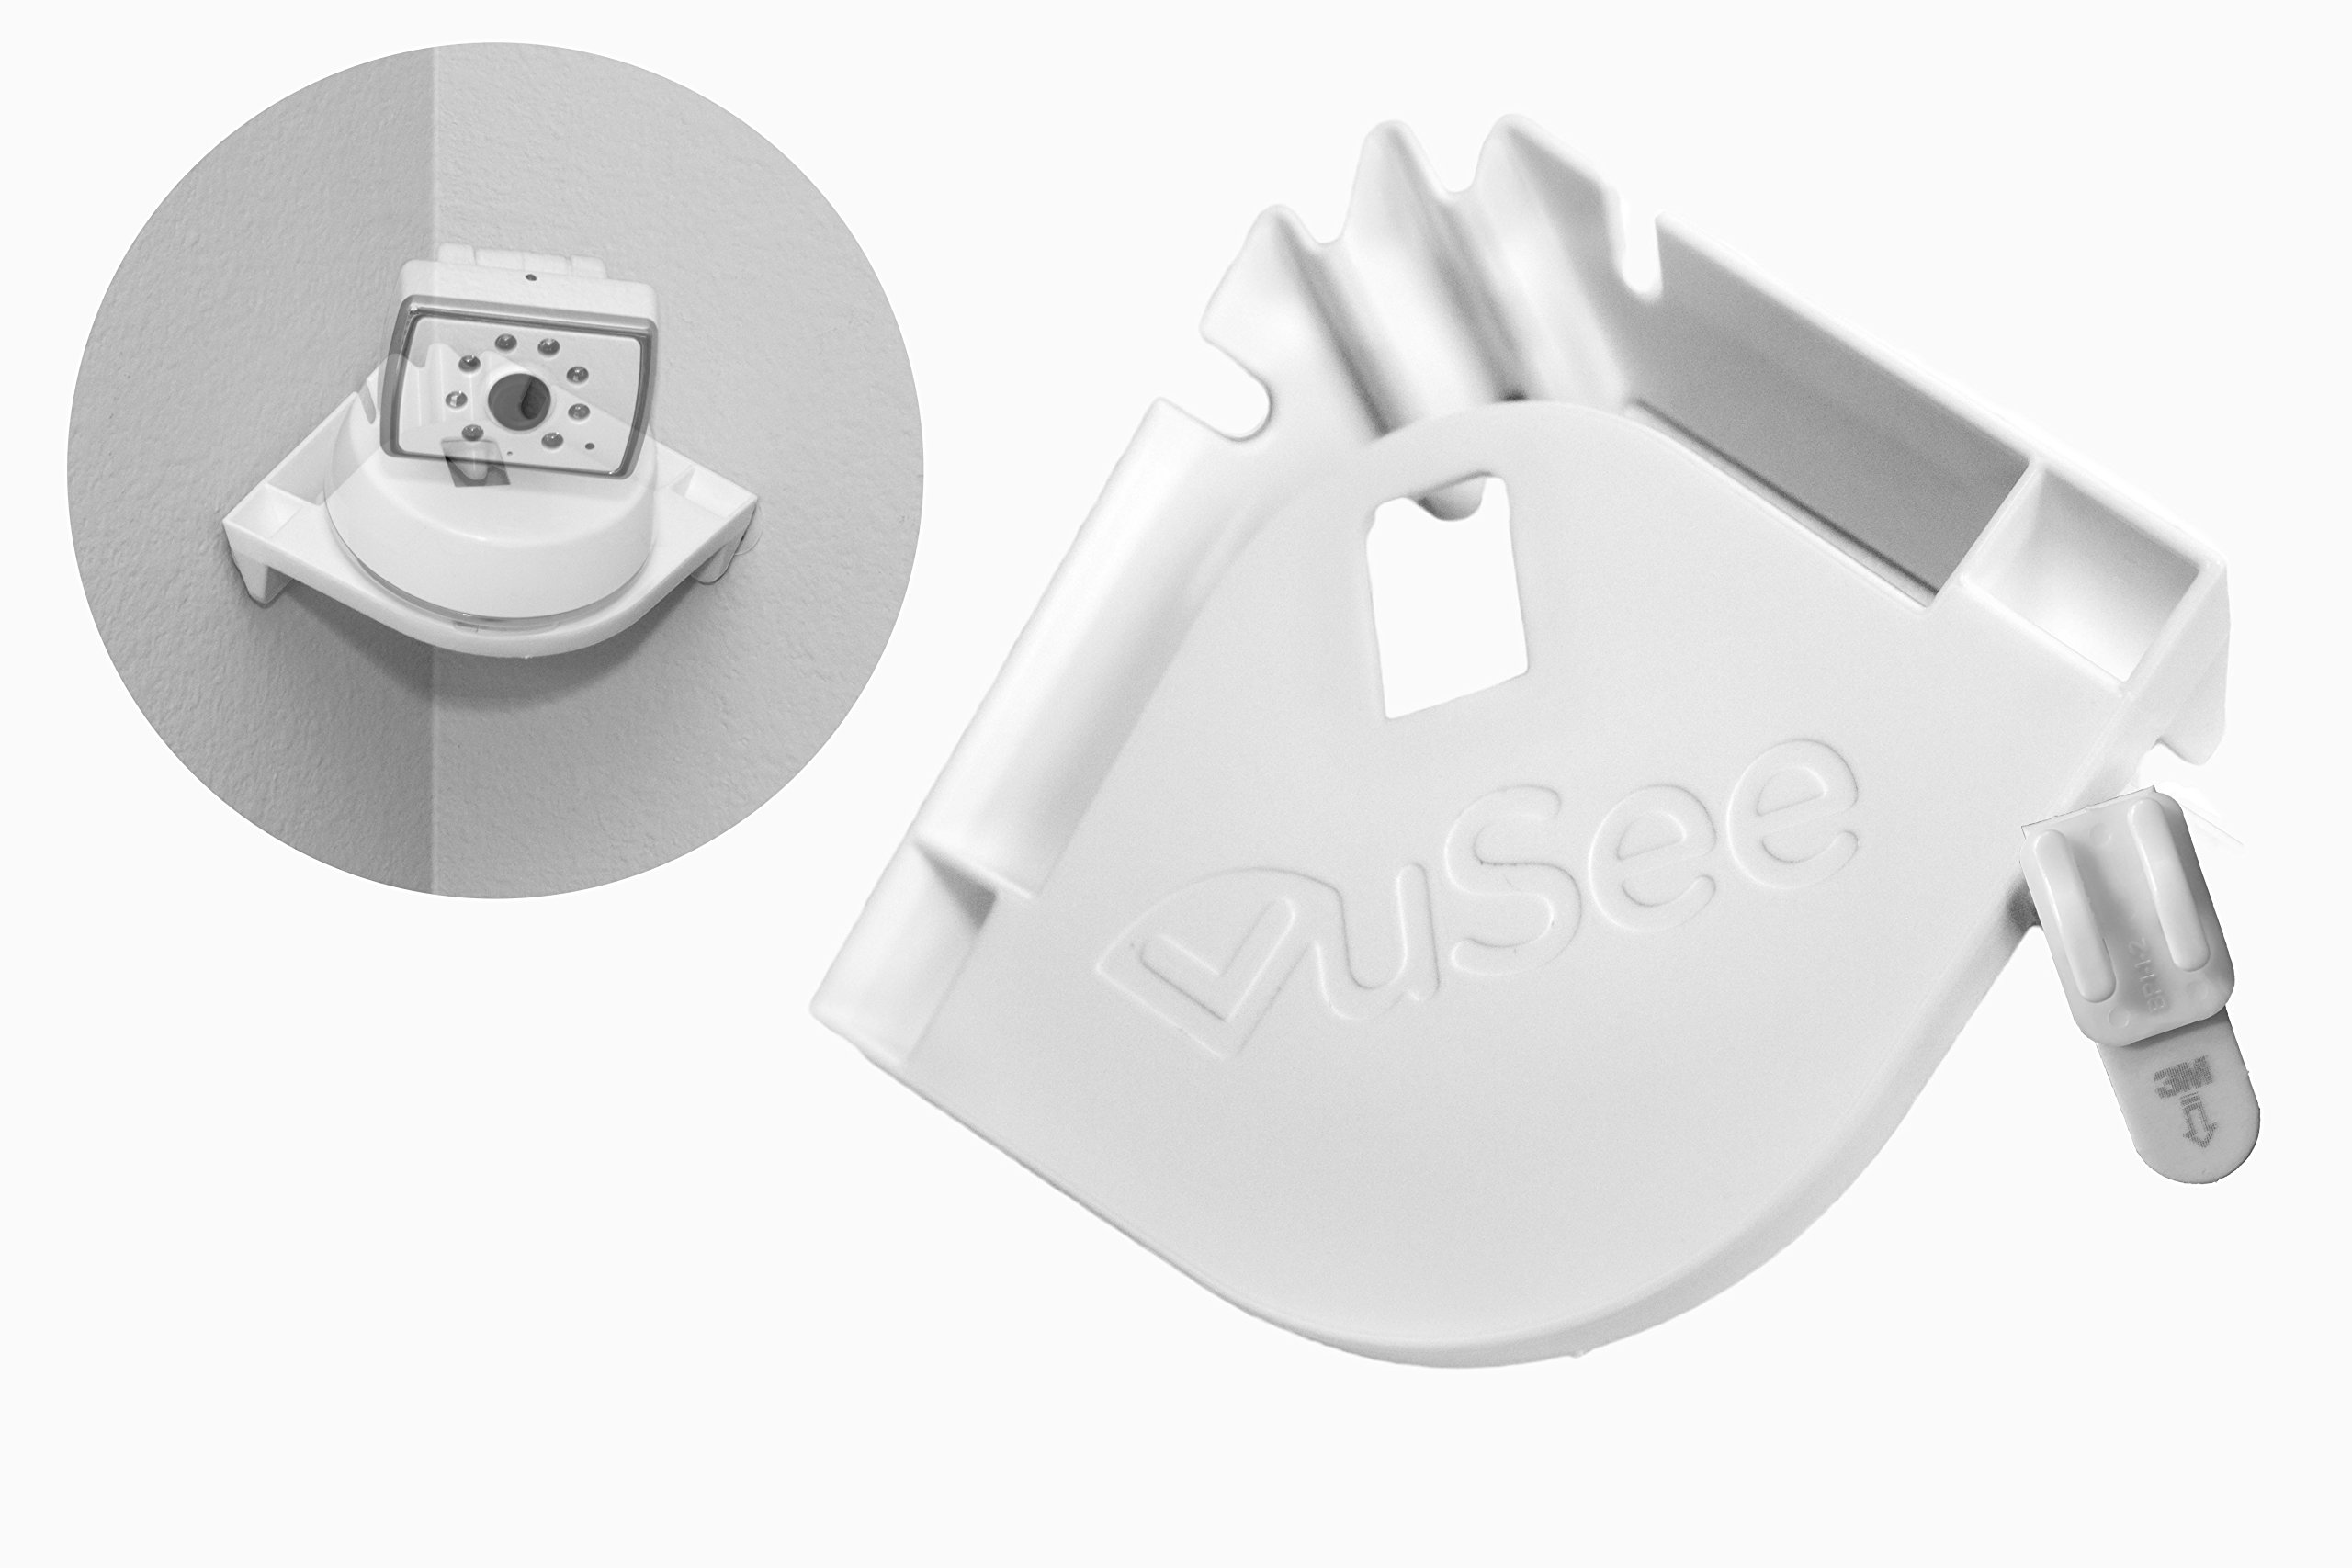 VuSee - The Universal Baby Monitor Shelf (Corner) - Compatible with Most Baby Monitors - Peel and Stick Installation